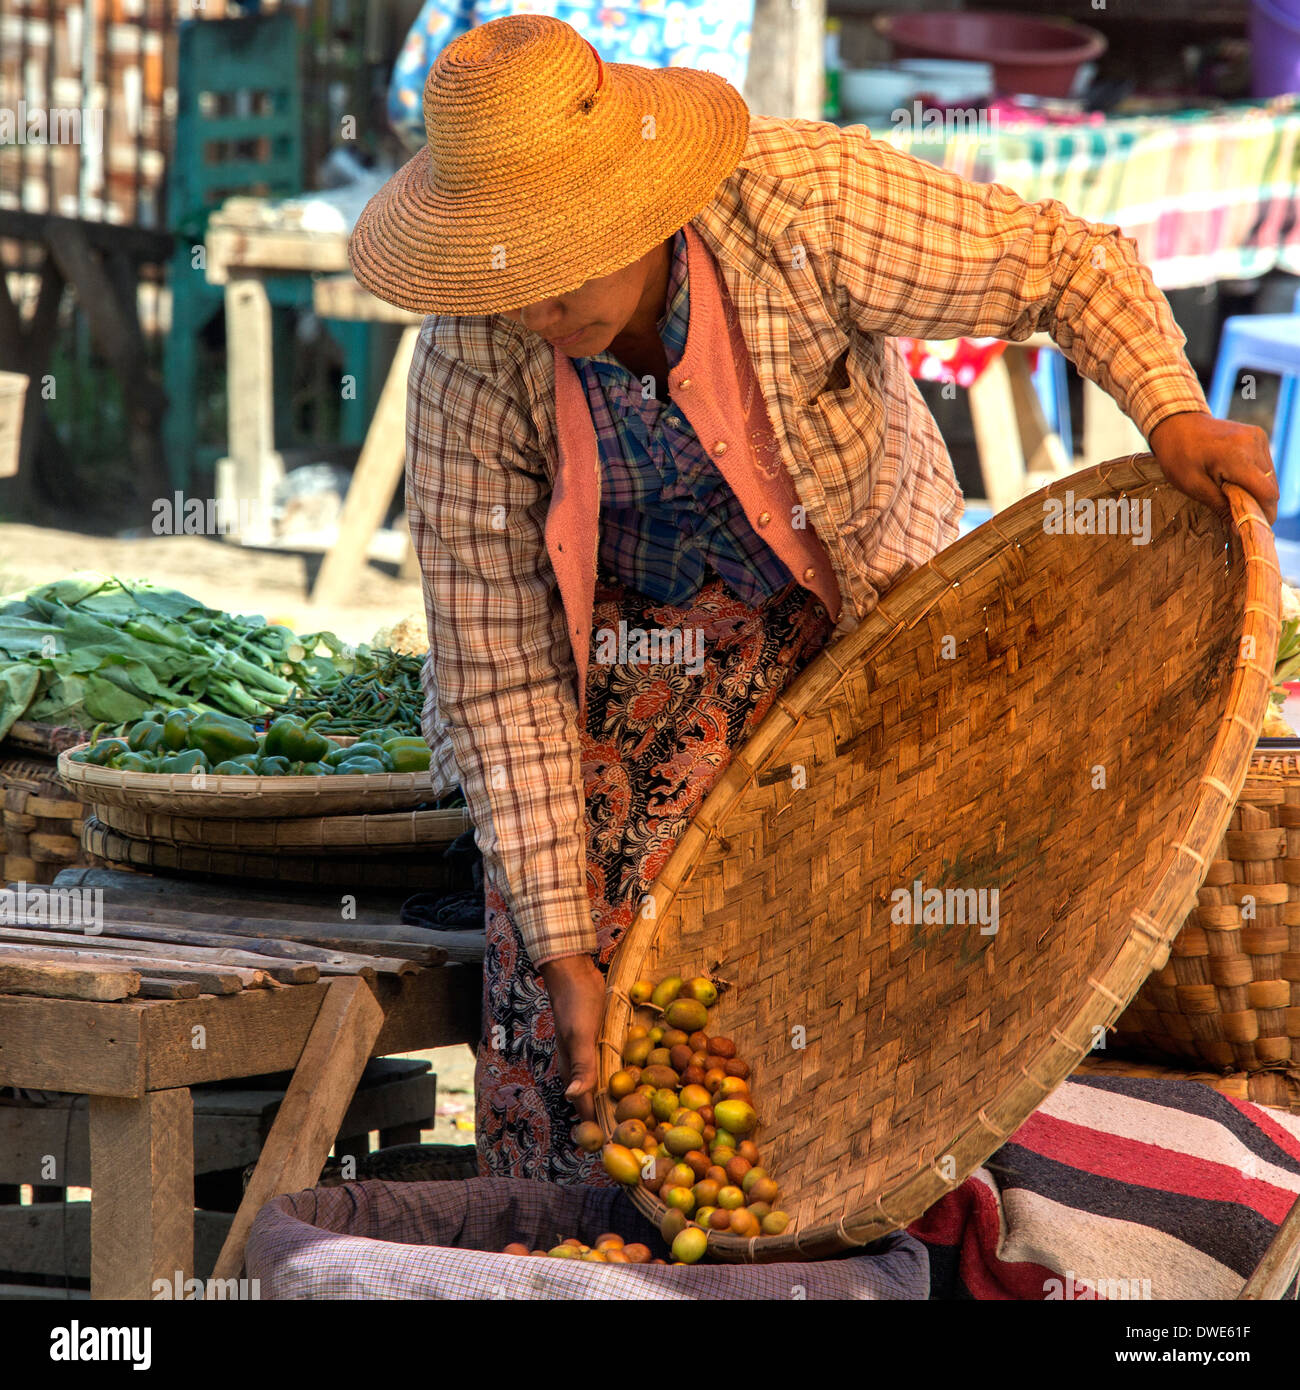 Everyday scene at a market in the ancient city of Bagan in Mayanmar (Burma). - Stock Image